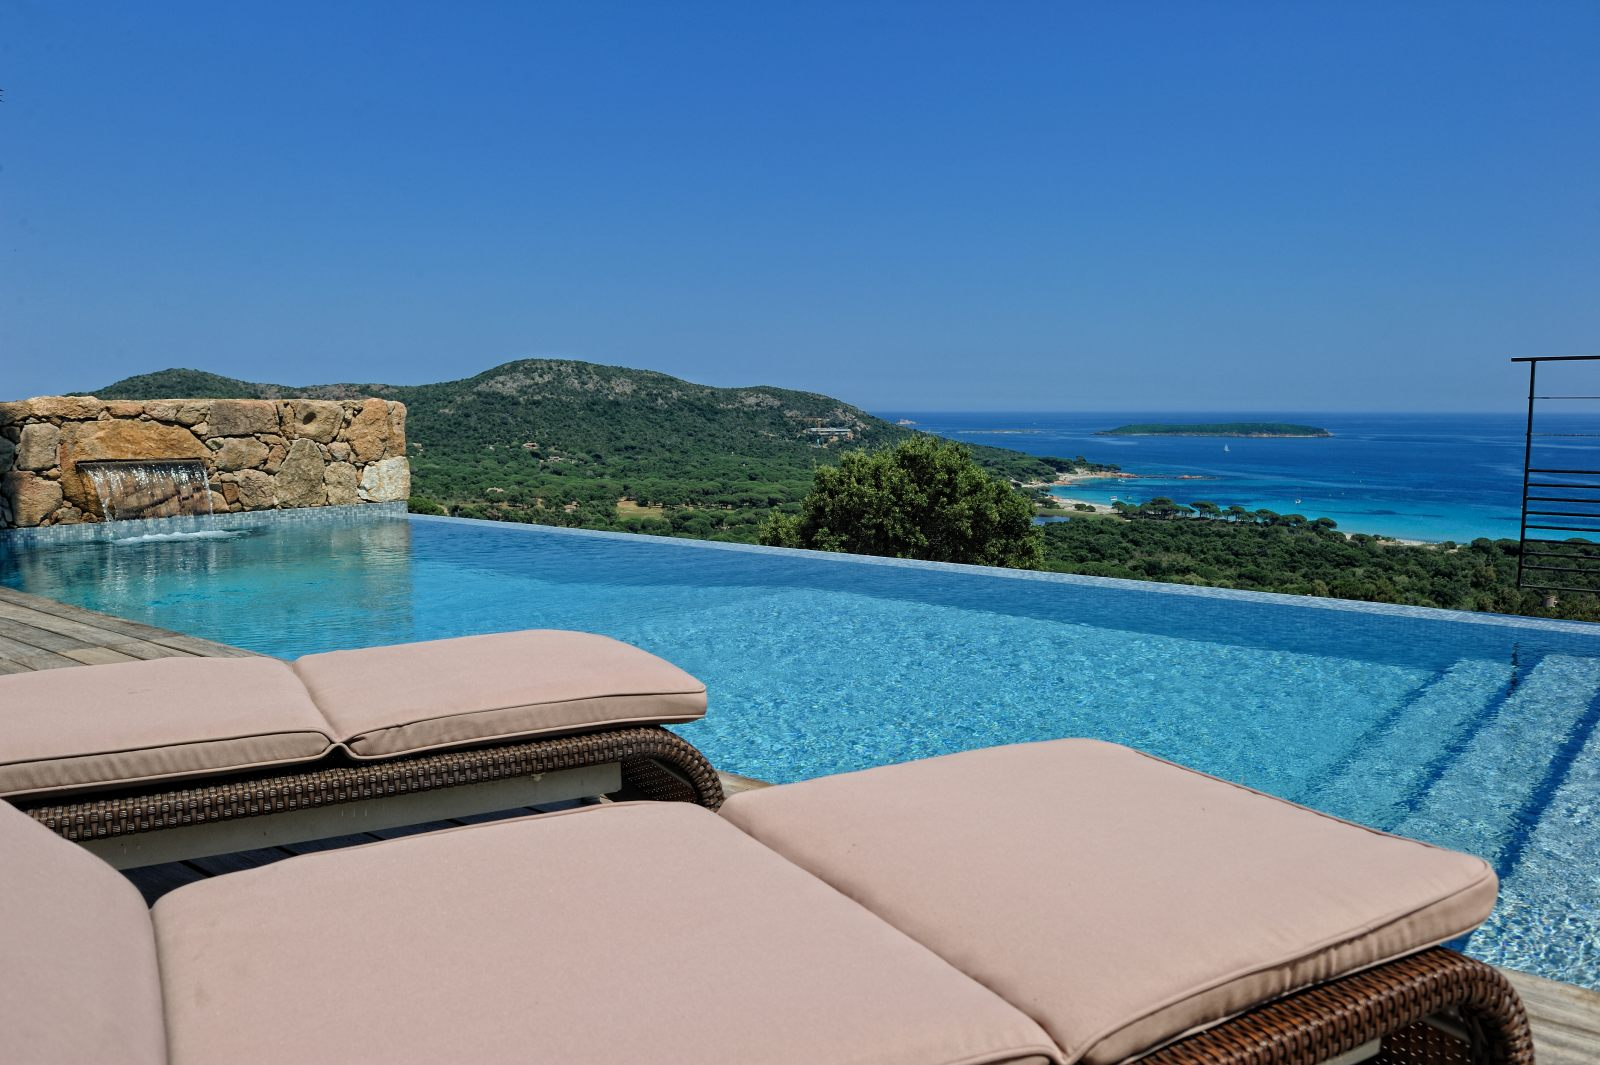 location villa porto vecchio piscine privee jacuzzi plage. Black Bedroom Furniture Sets. Home Design Ideas